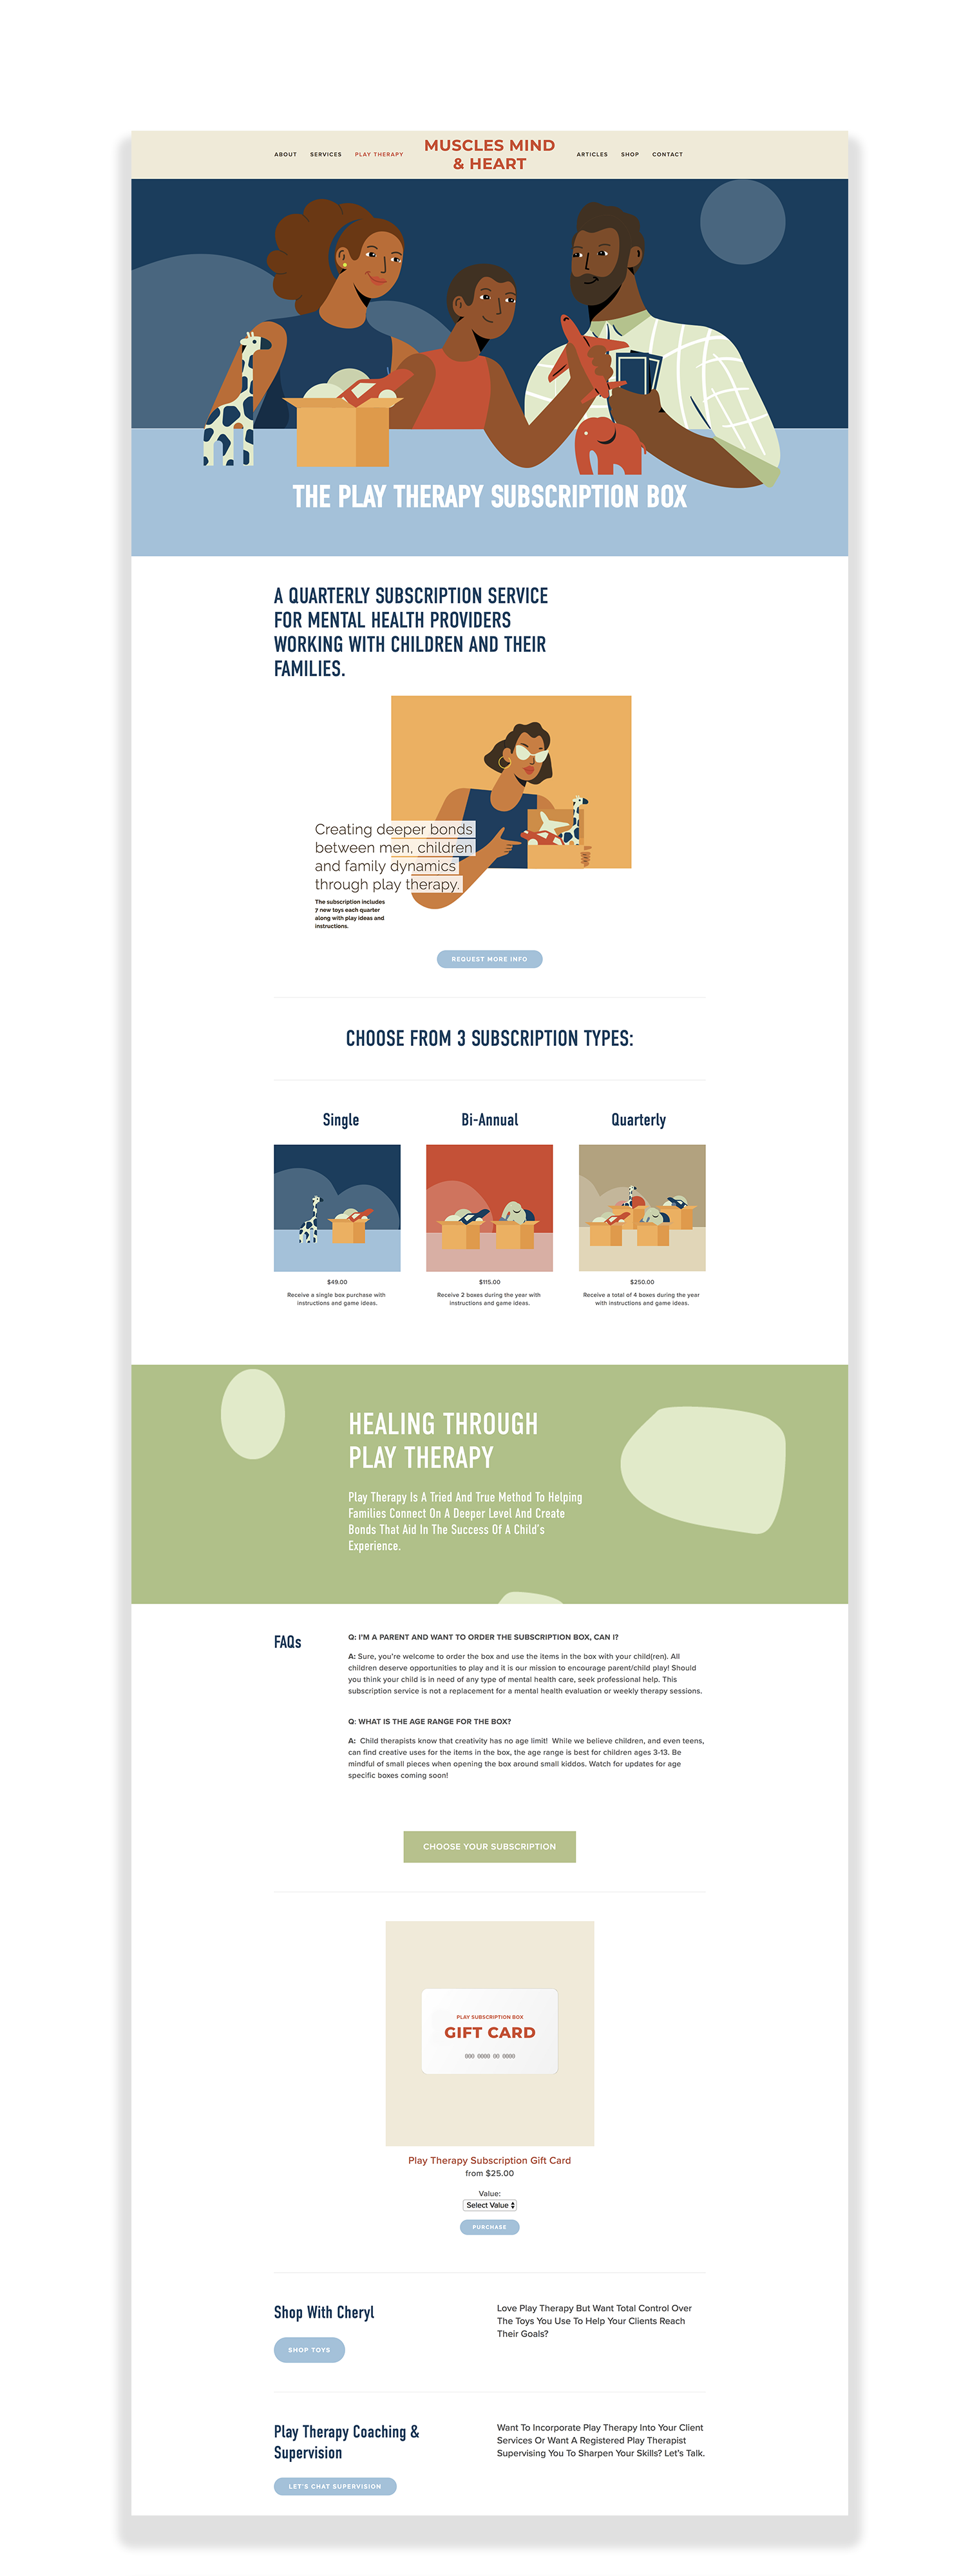 muscles-mind-heart-website-design-play-therapy-laptop.png